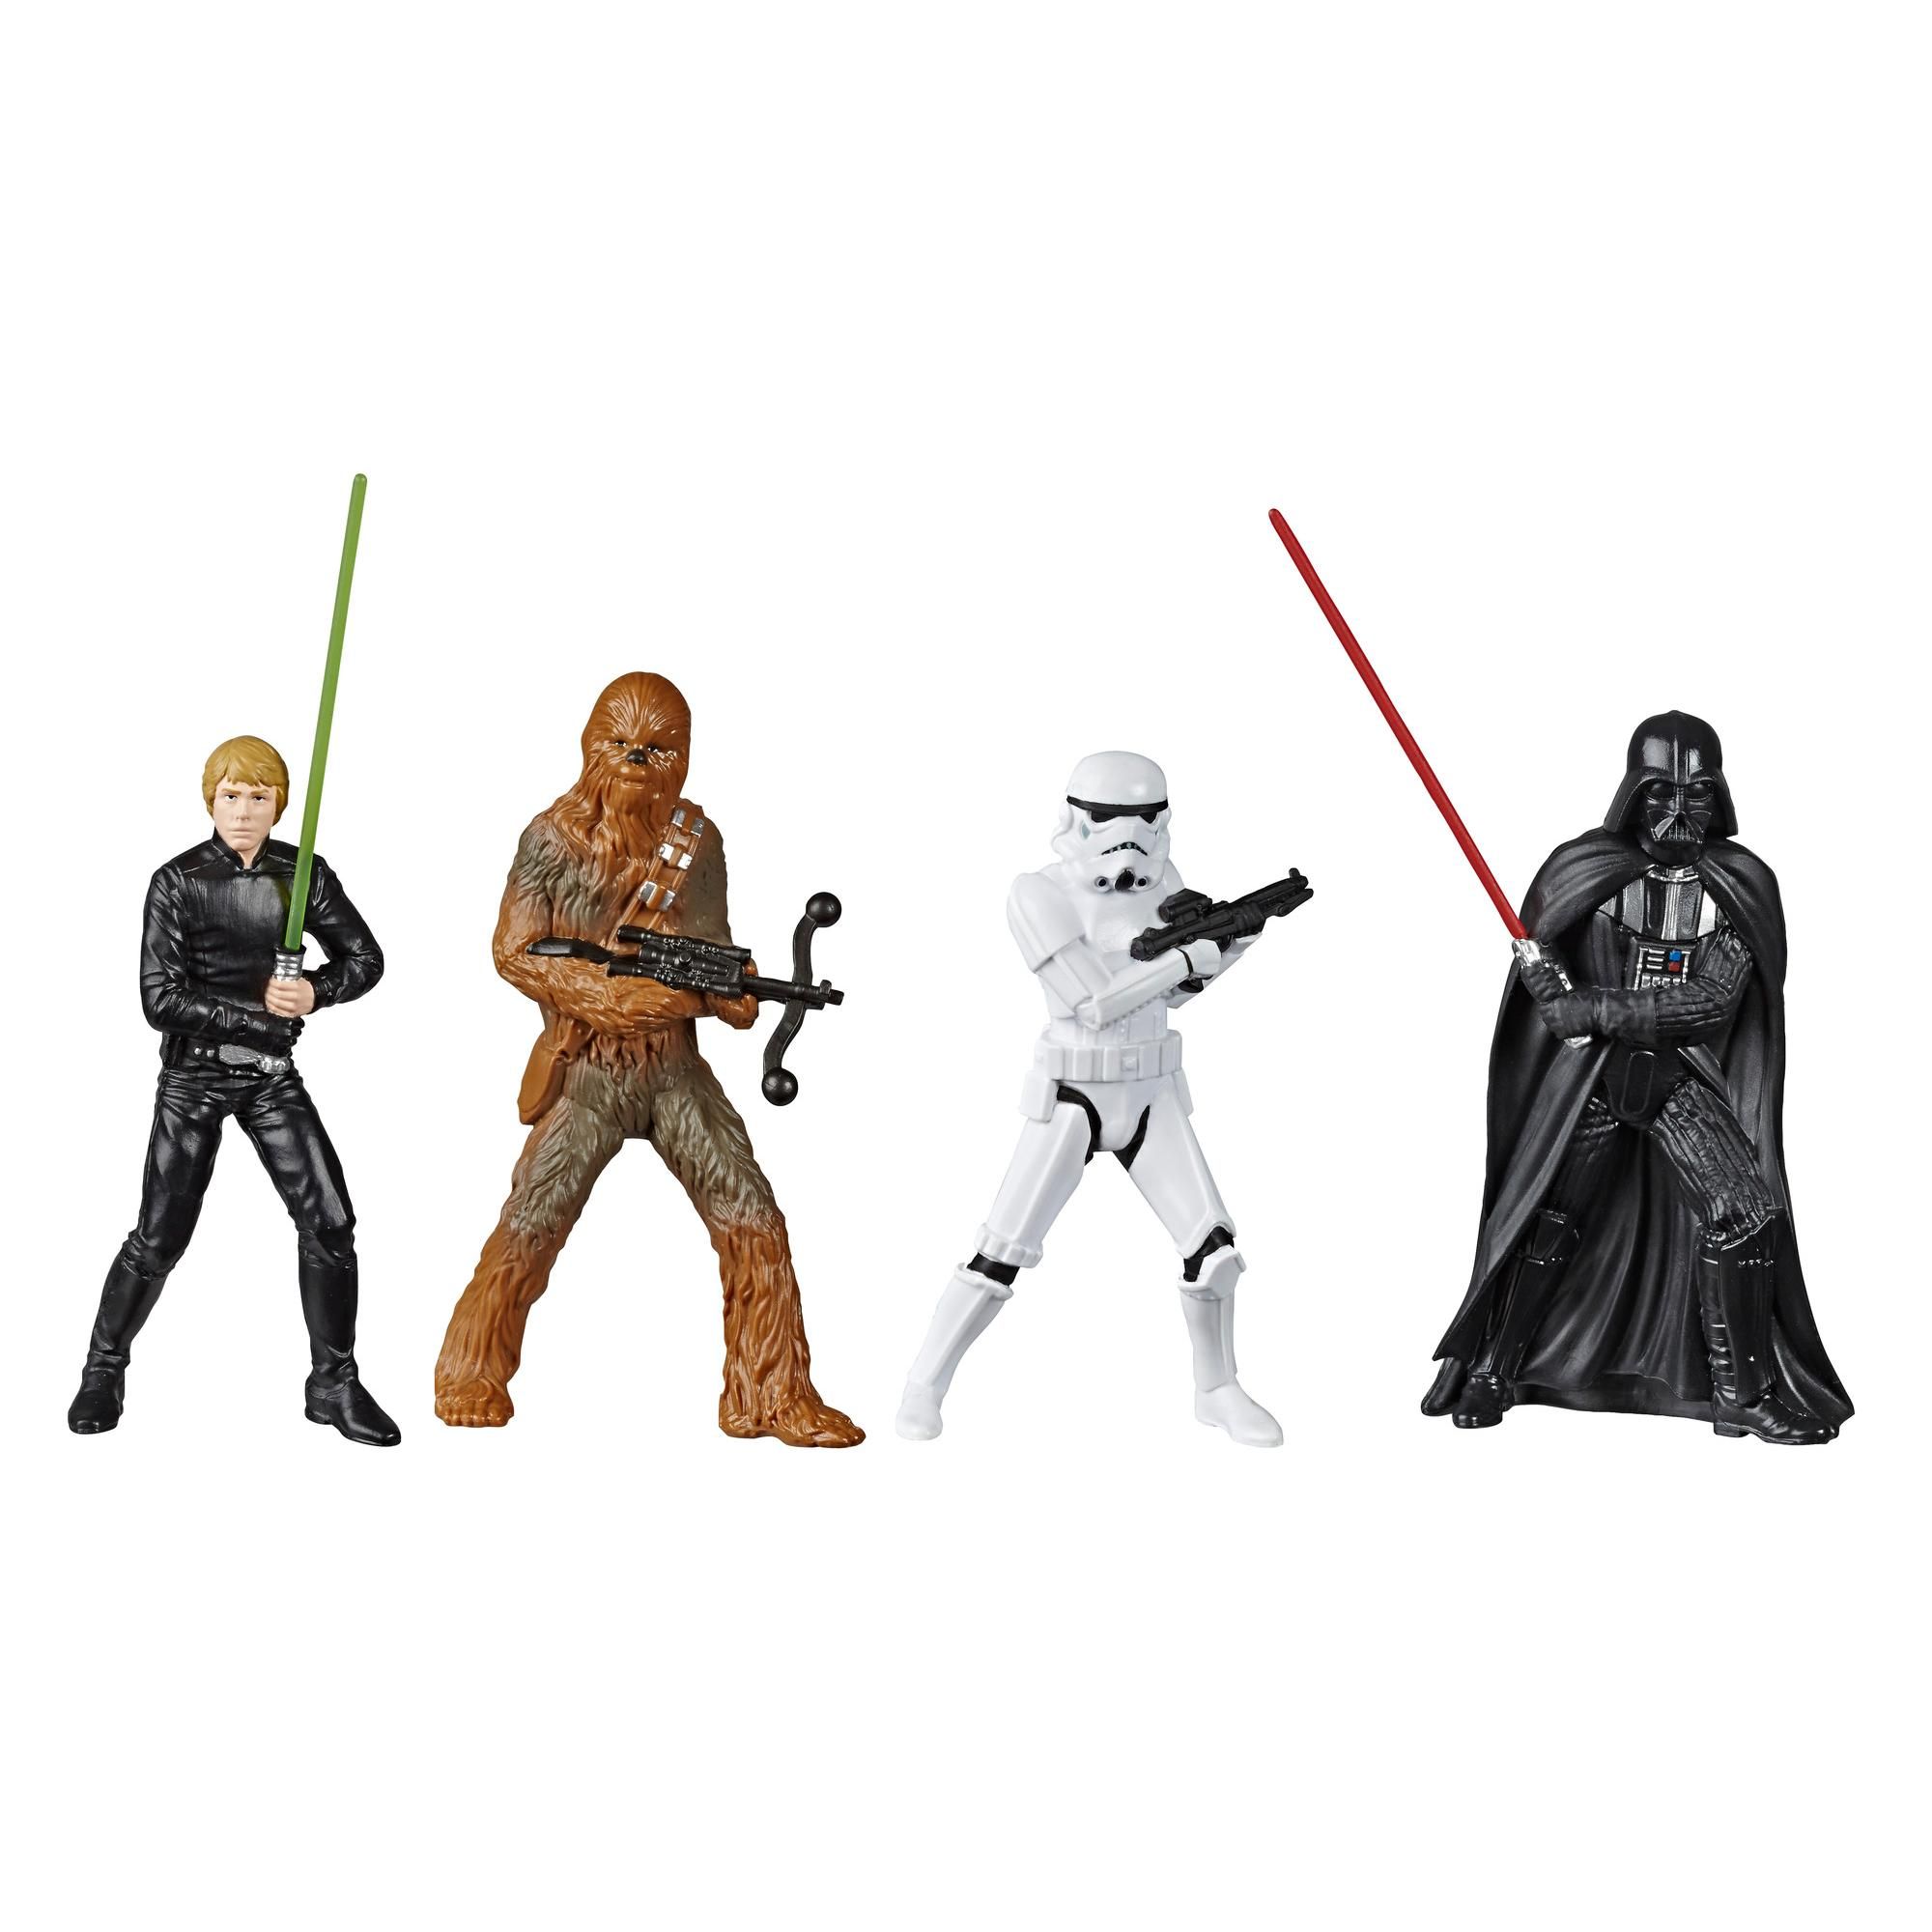 Star Wars: The Rise of Skywalker Value Figures 4-inch Action Figure Assortment, Toys for Kids Ages 4 and Up